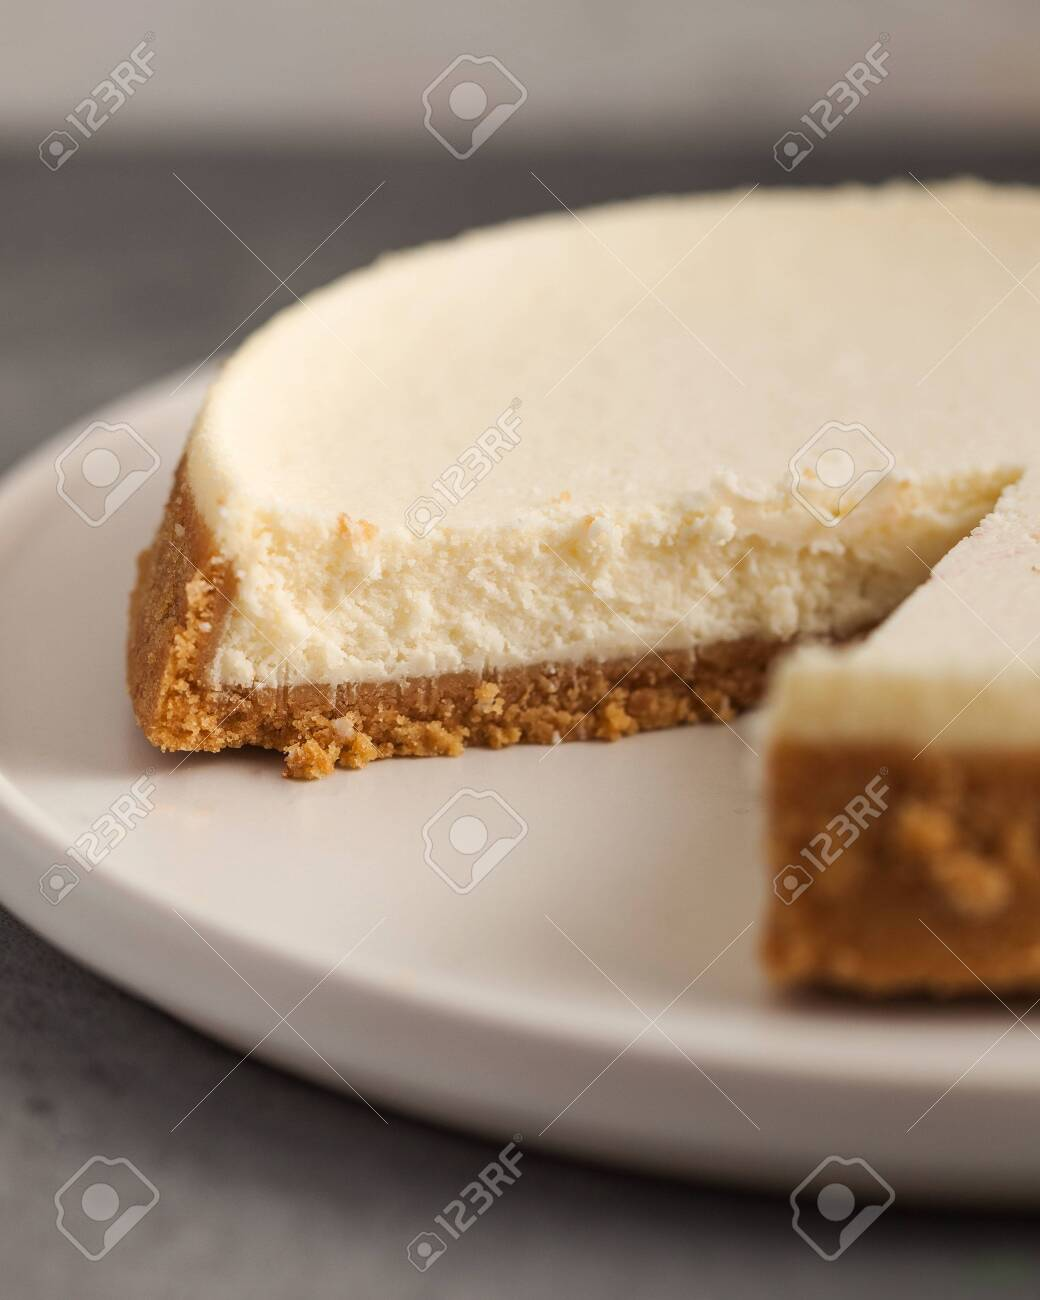 Cut cheesecake cake close-up on a white plate on a gray background. - 135717583